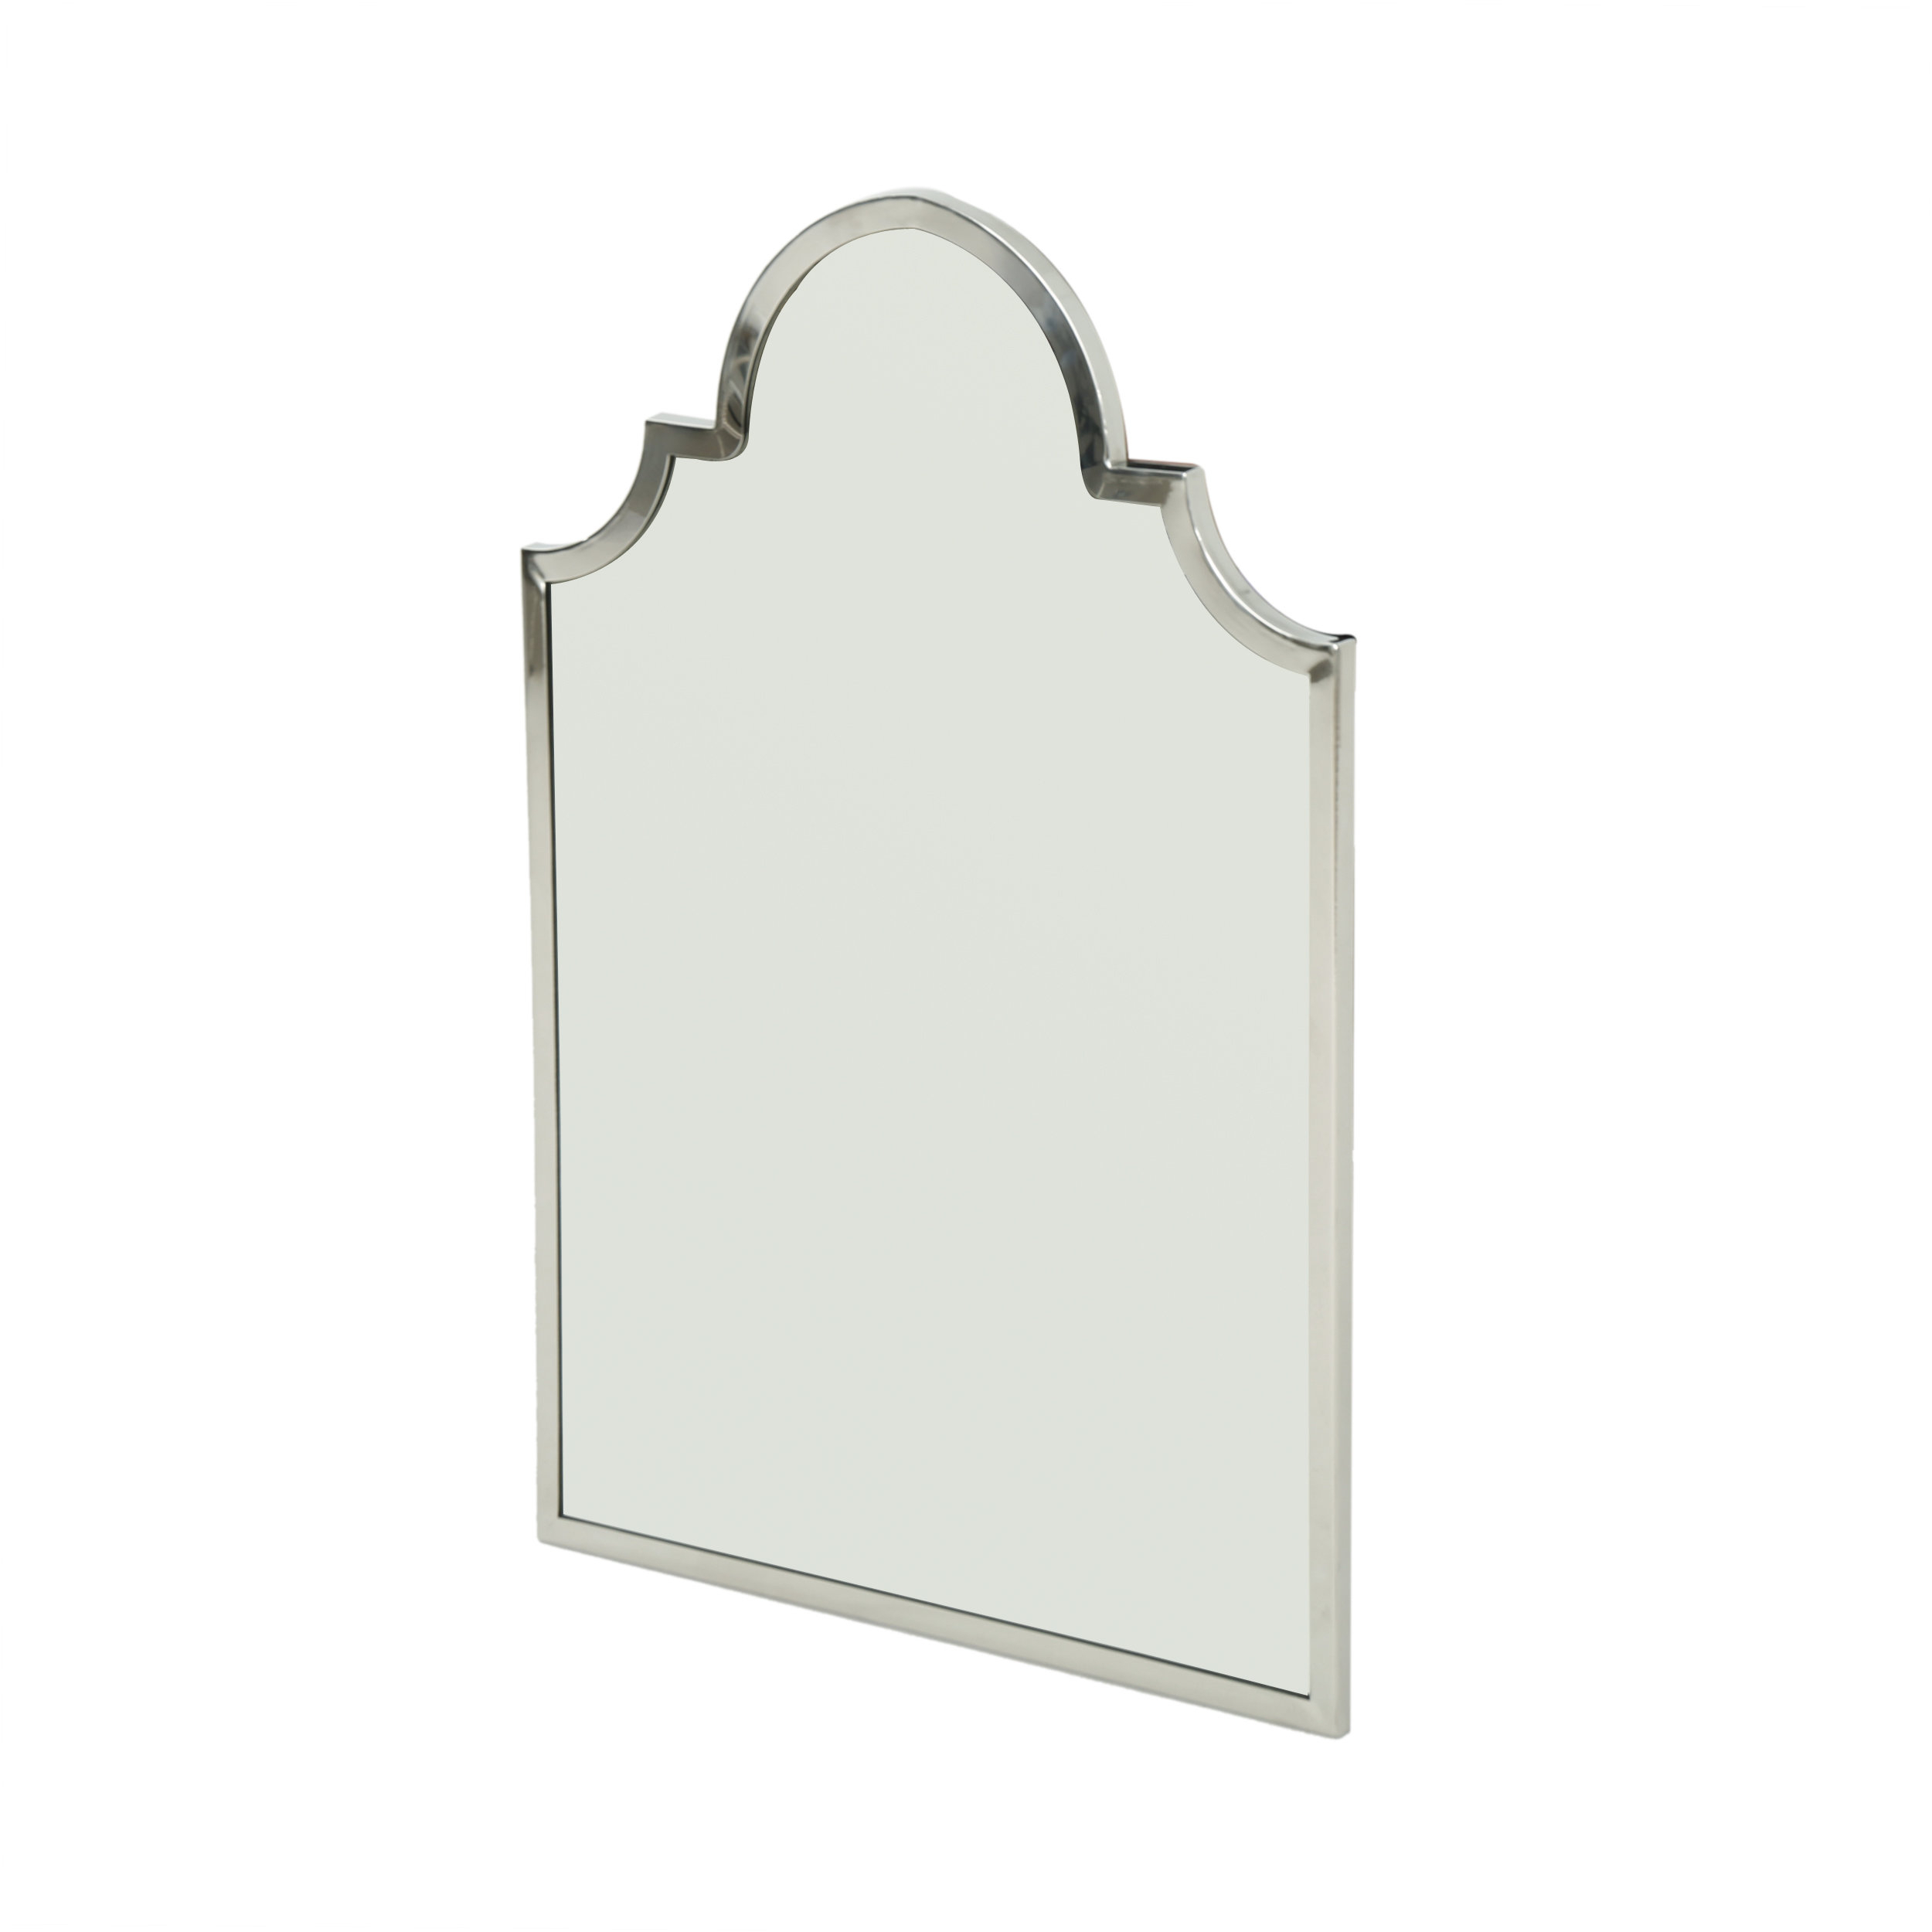 Cassel Accent Mirror Pertaining To Fifi Contemporary Arch Wall Mirrors (View 10 of 30)